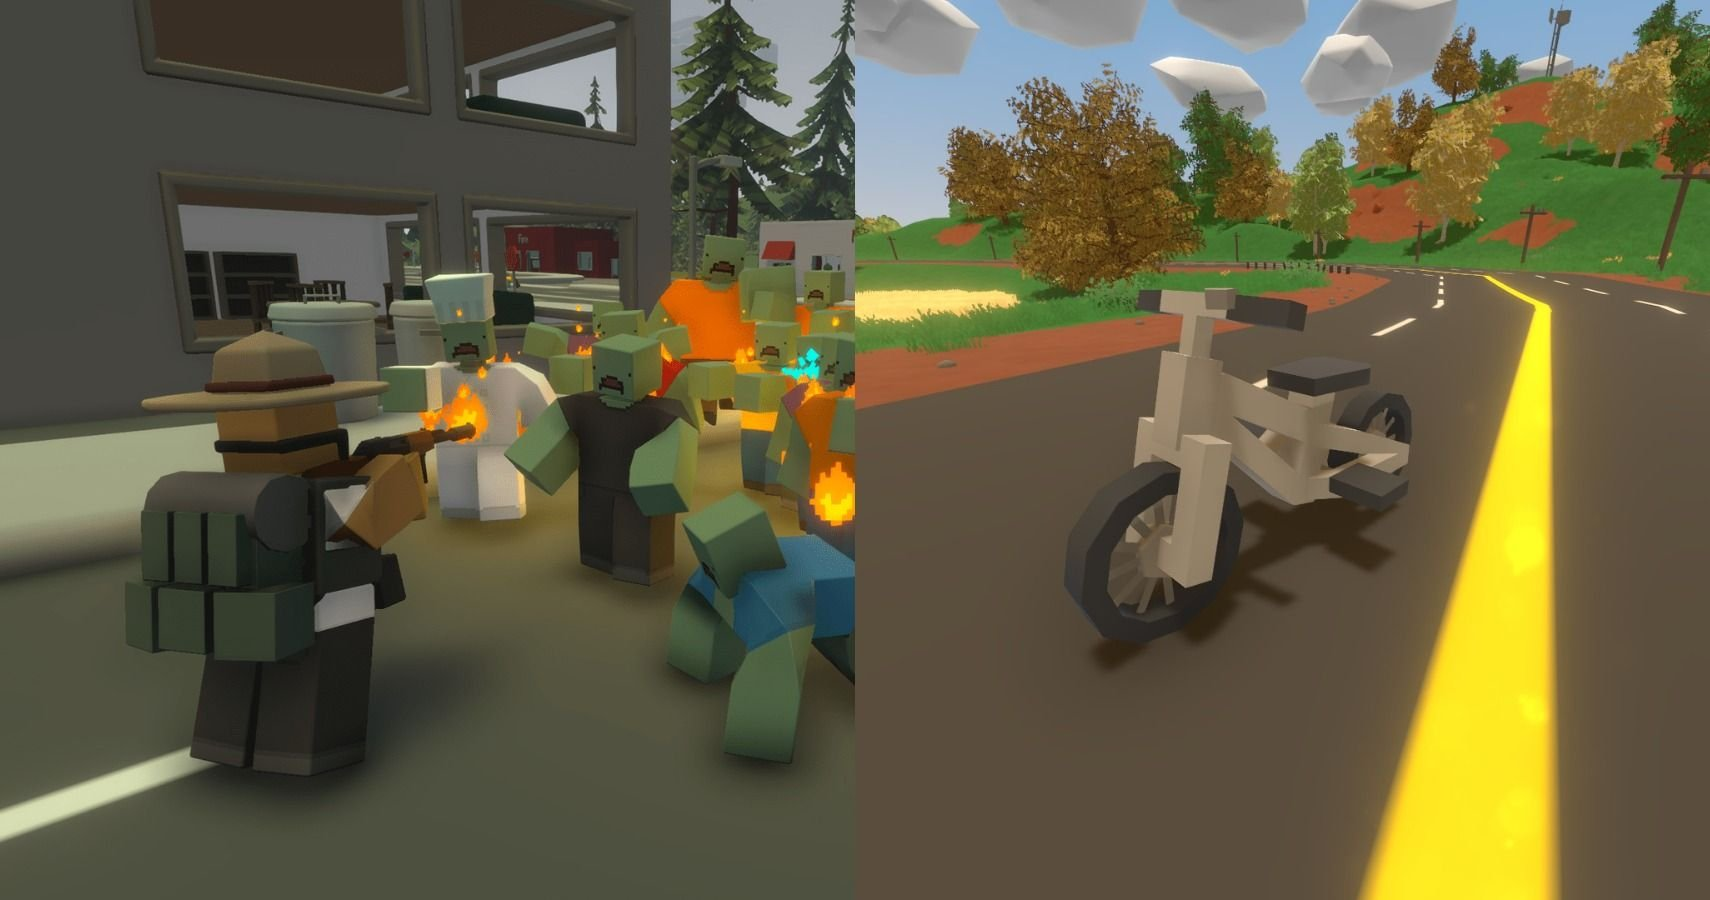 Unturned: 10 Pro Tips For Surviving In The Free-To-Play Zombie Game